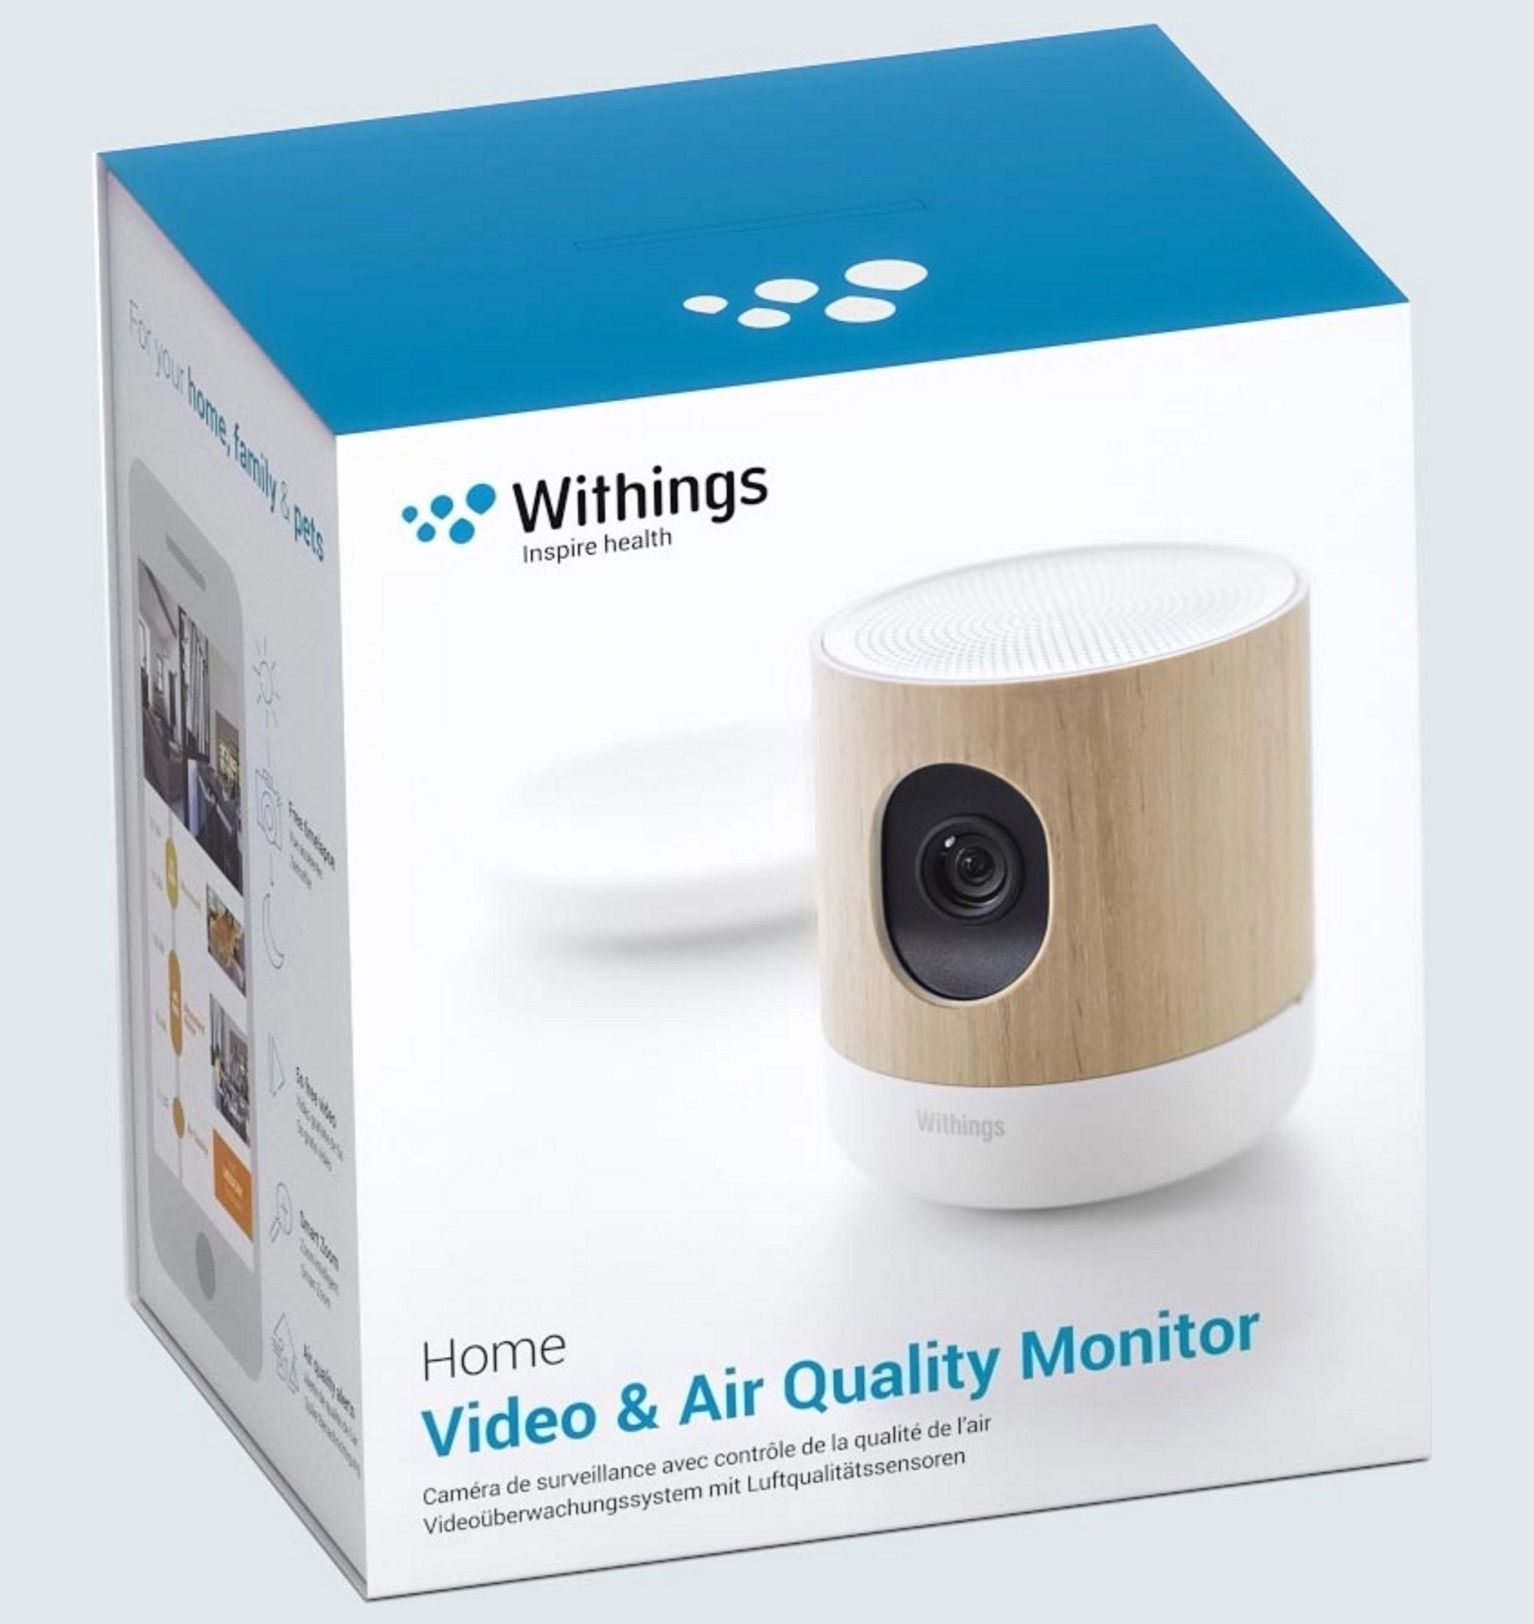 camera hd connectee Withings Home